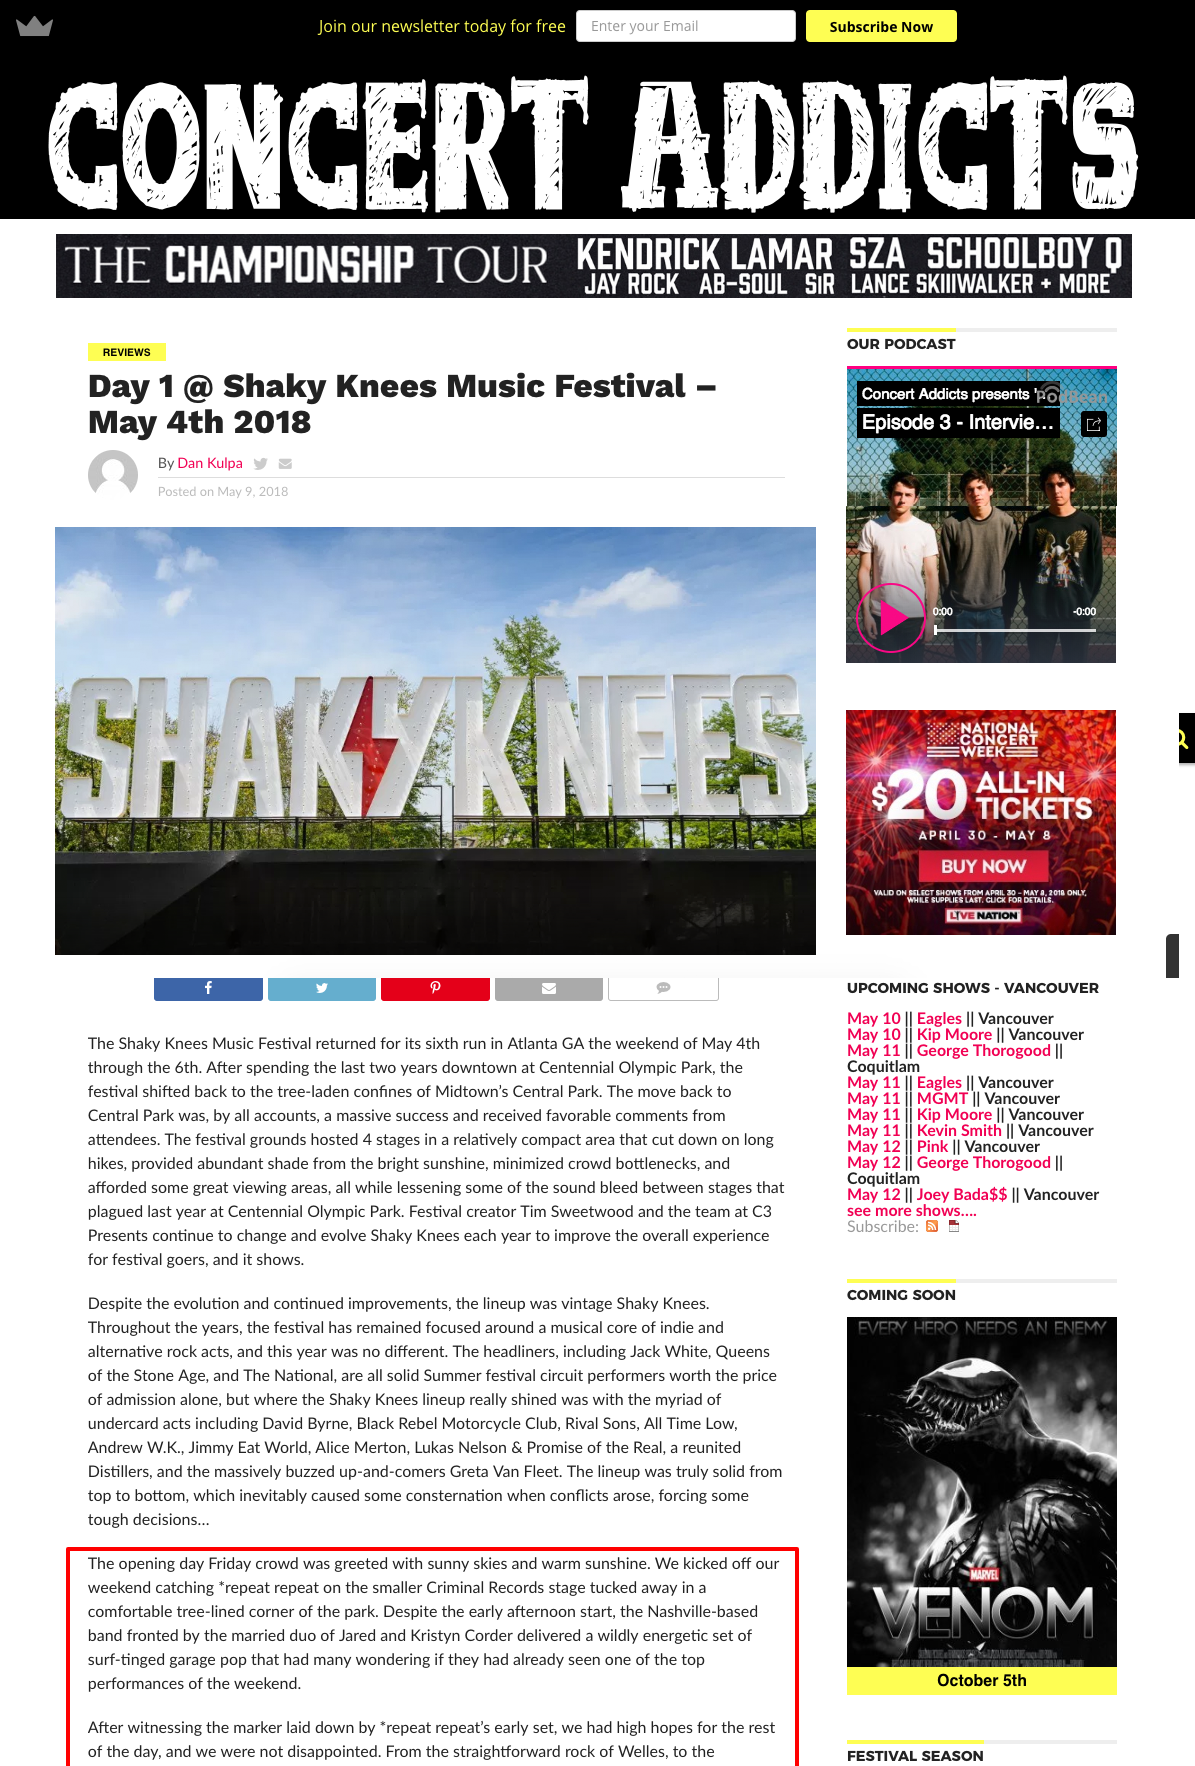 ConcertAddicts_Reviews Day 1 Shaky Knees Music Festival – May 4th 2018   Concert Addicts.png